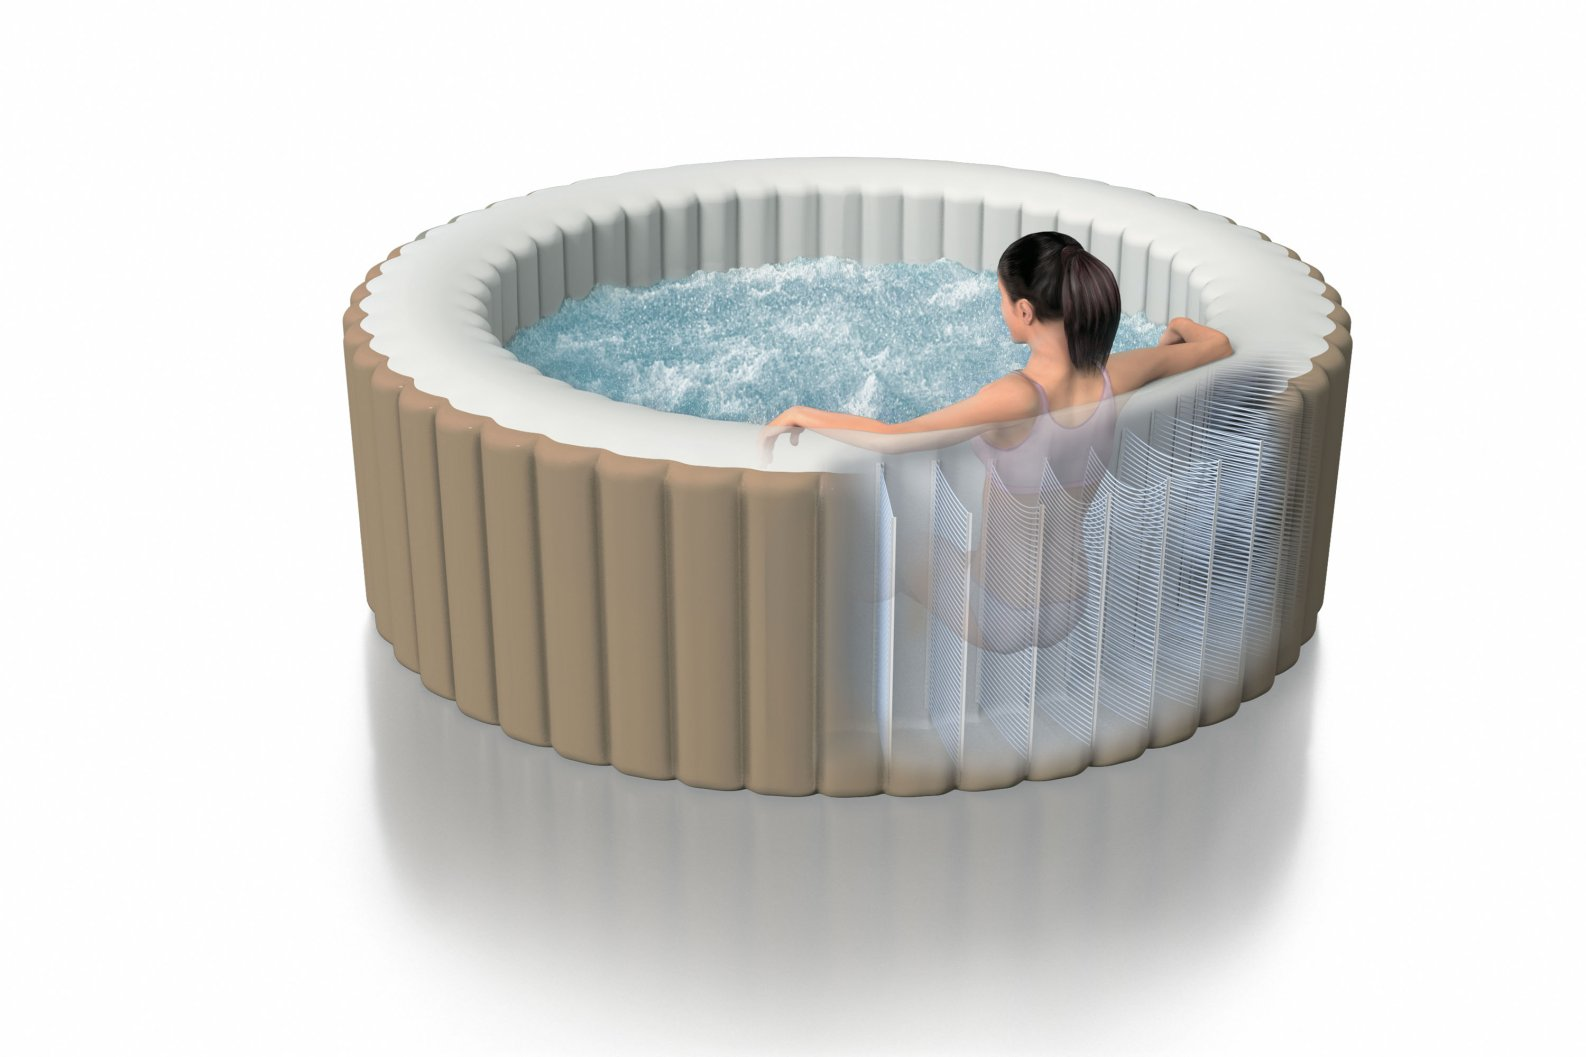 rotex intex pure bubble spa idromassaggio piscina fuori terra fuoriterra 28404 ebay. Black Bedroom Furniture Sets. Home Design Ideas